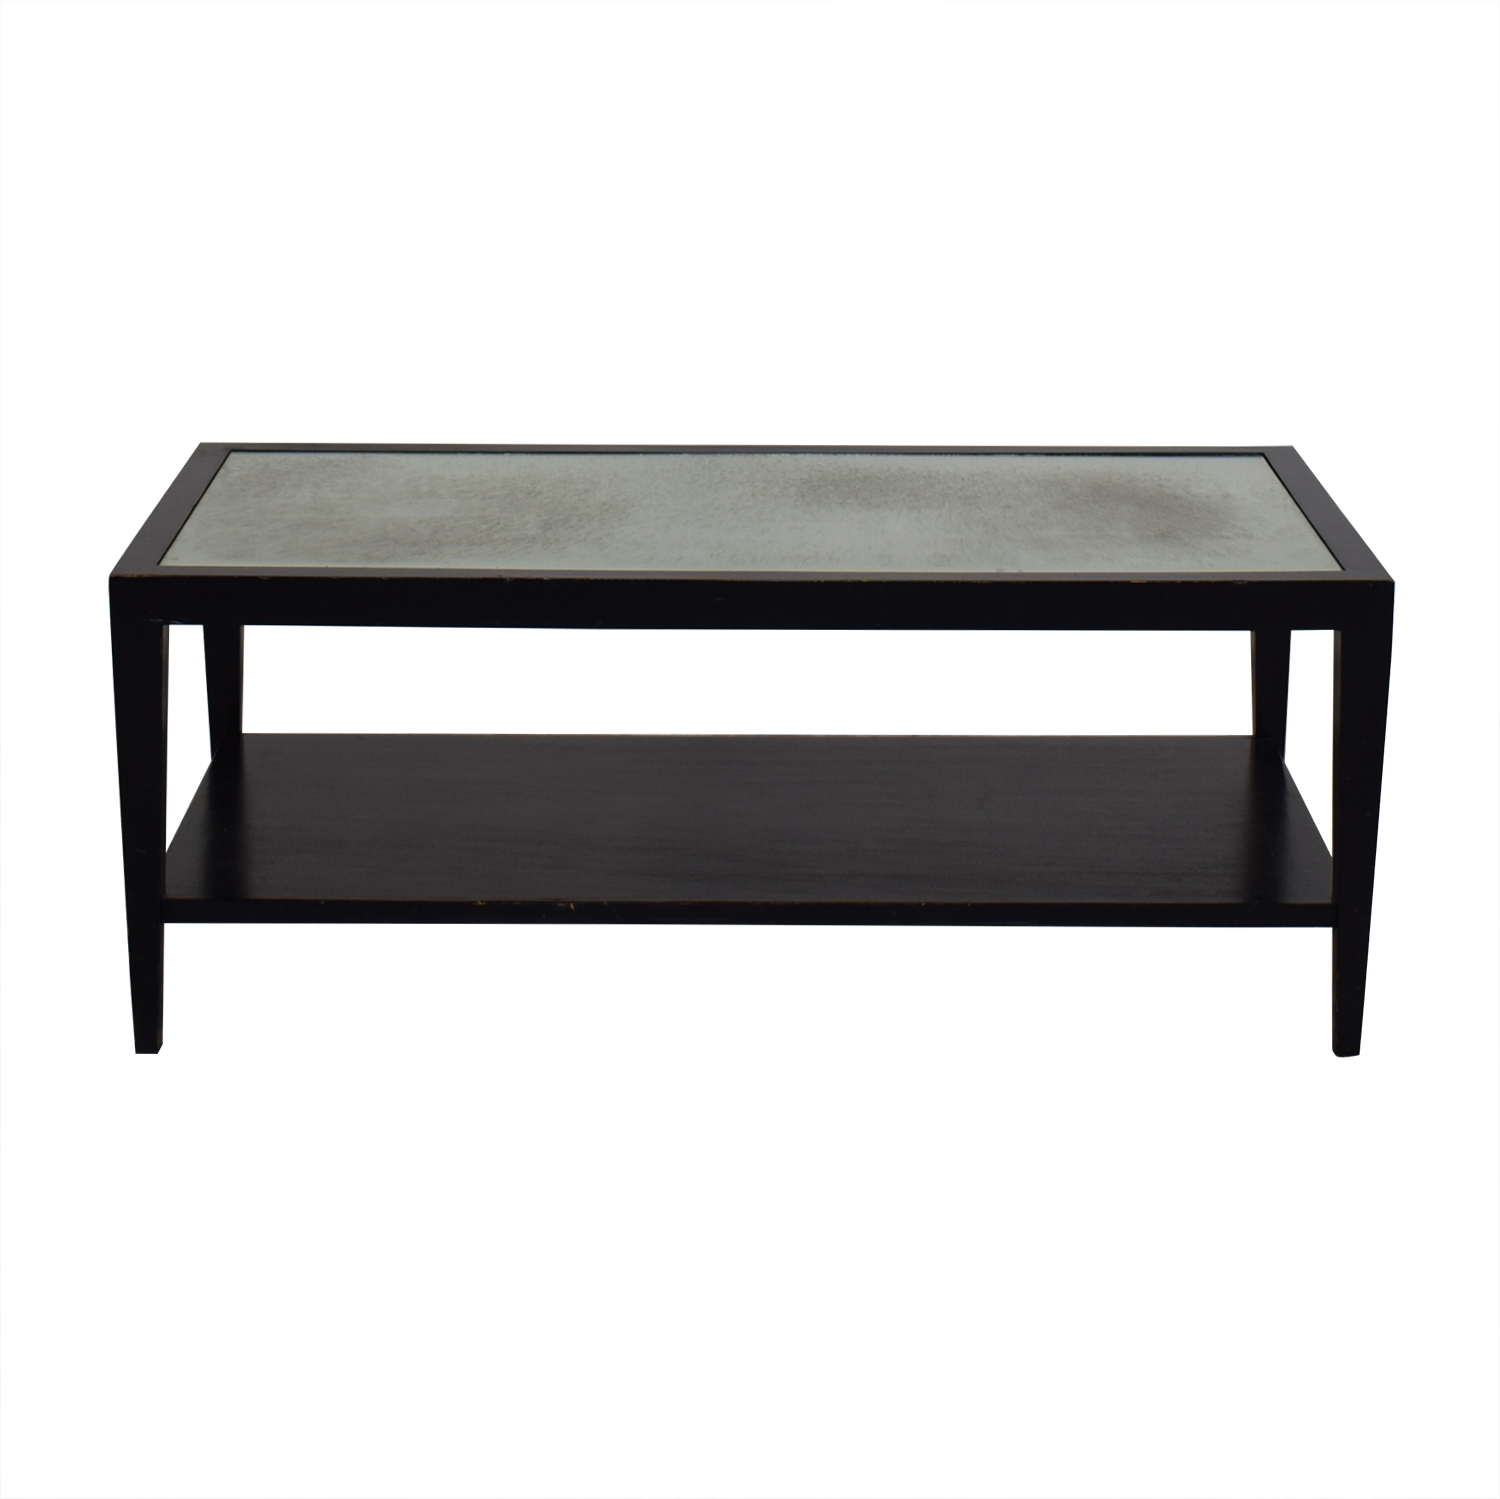 Crate & Barrel Crate & Barrel Two Tiered Coffee Table used